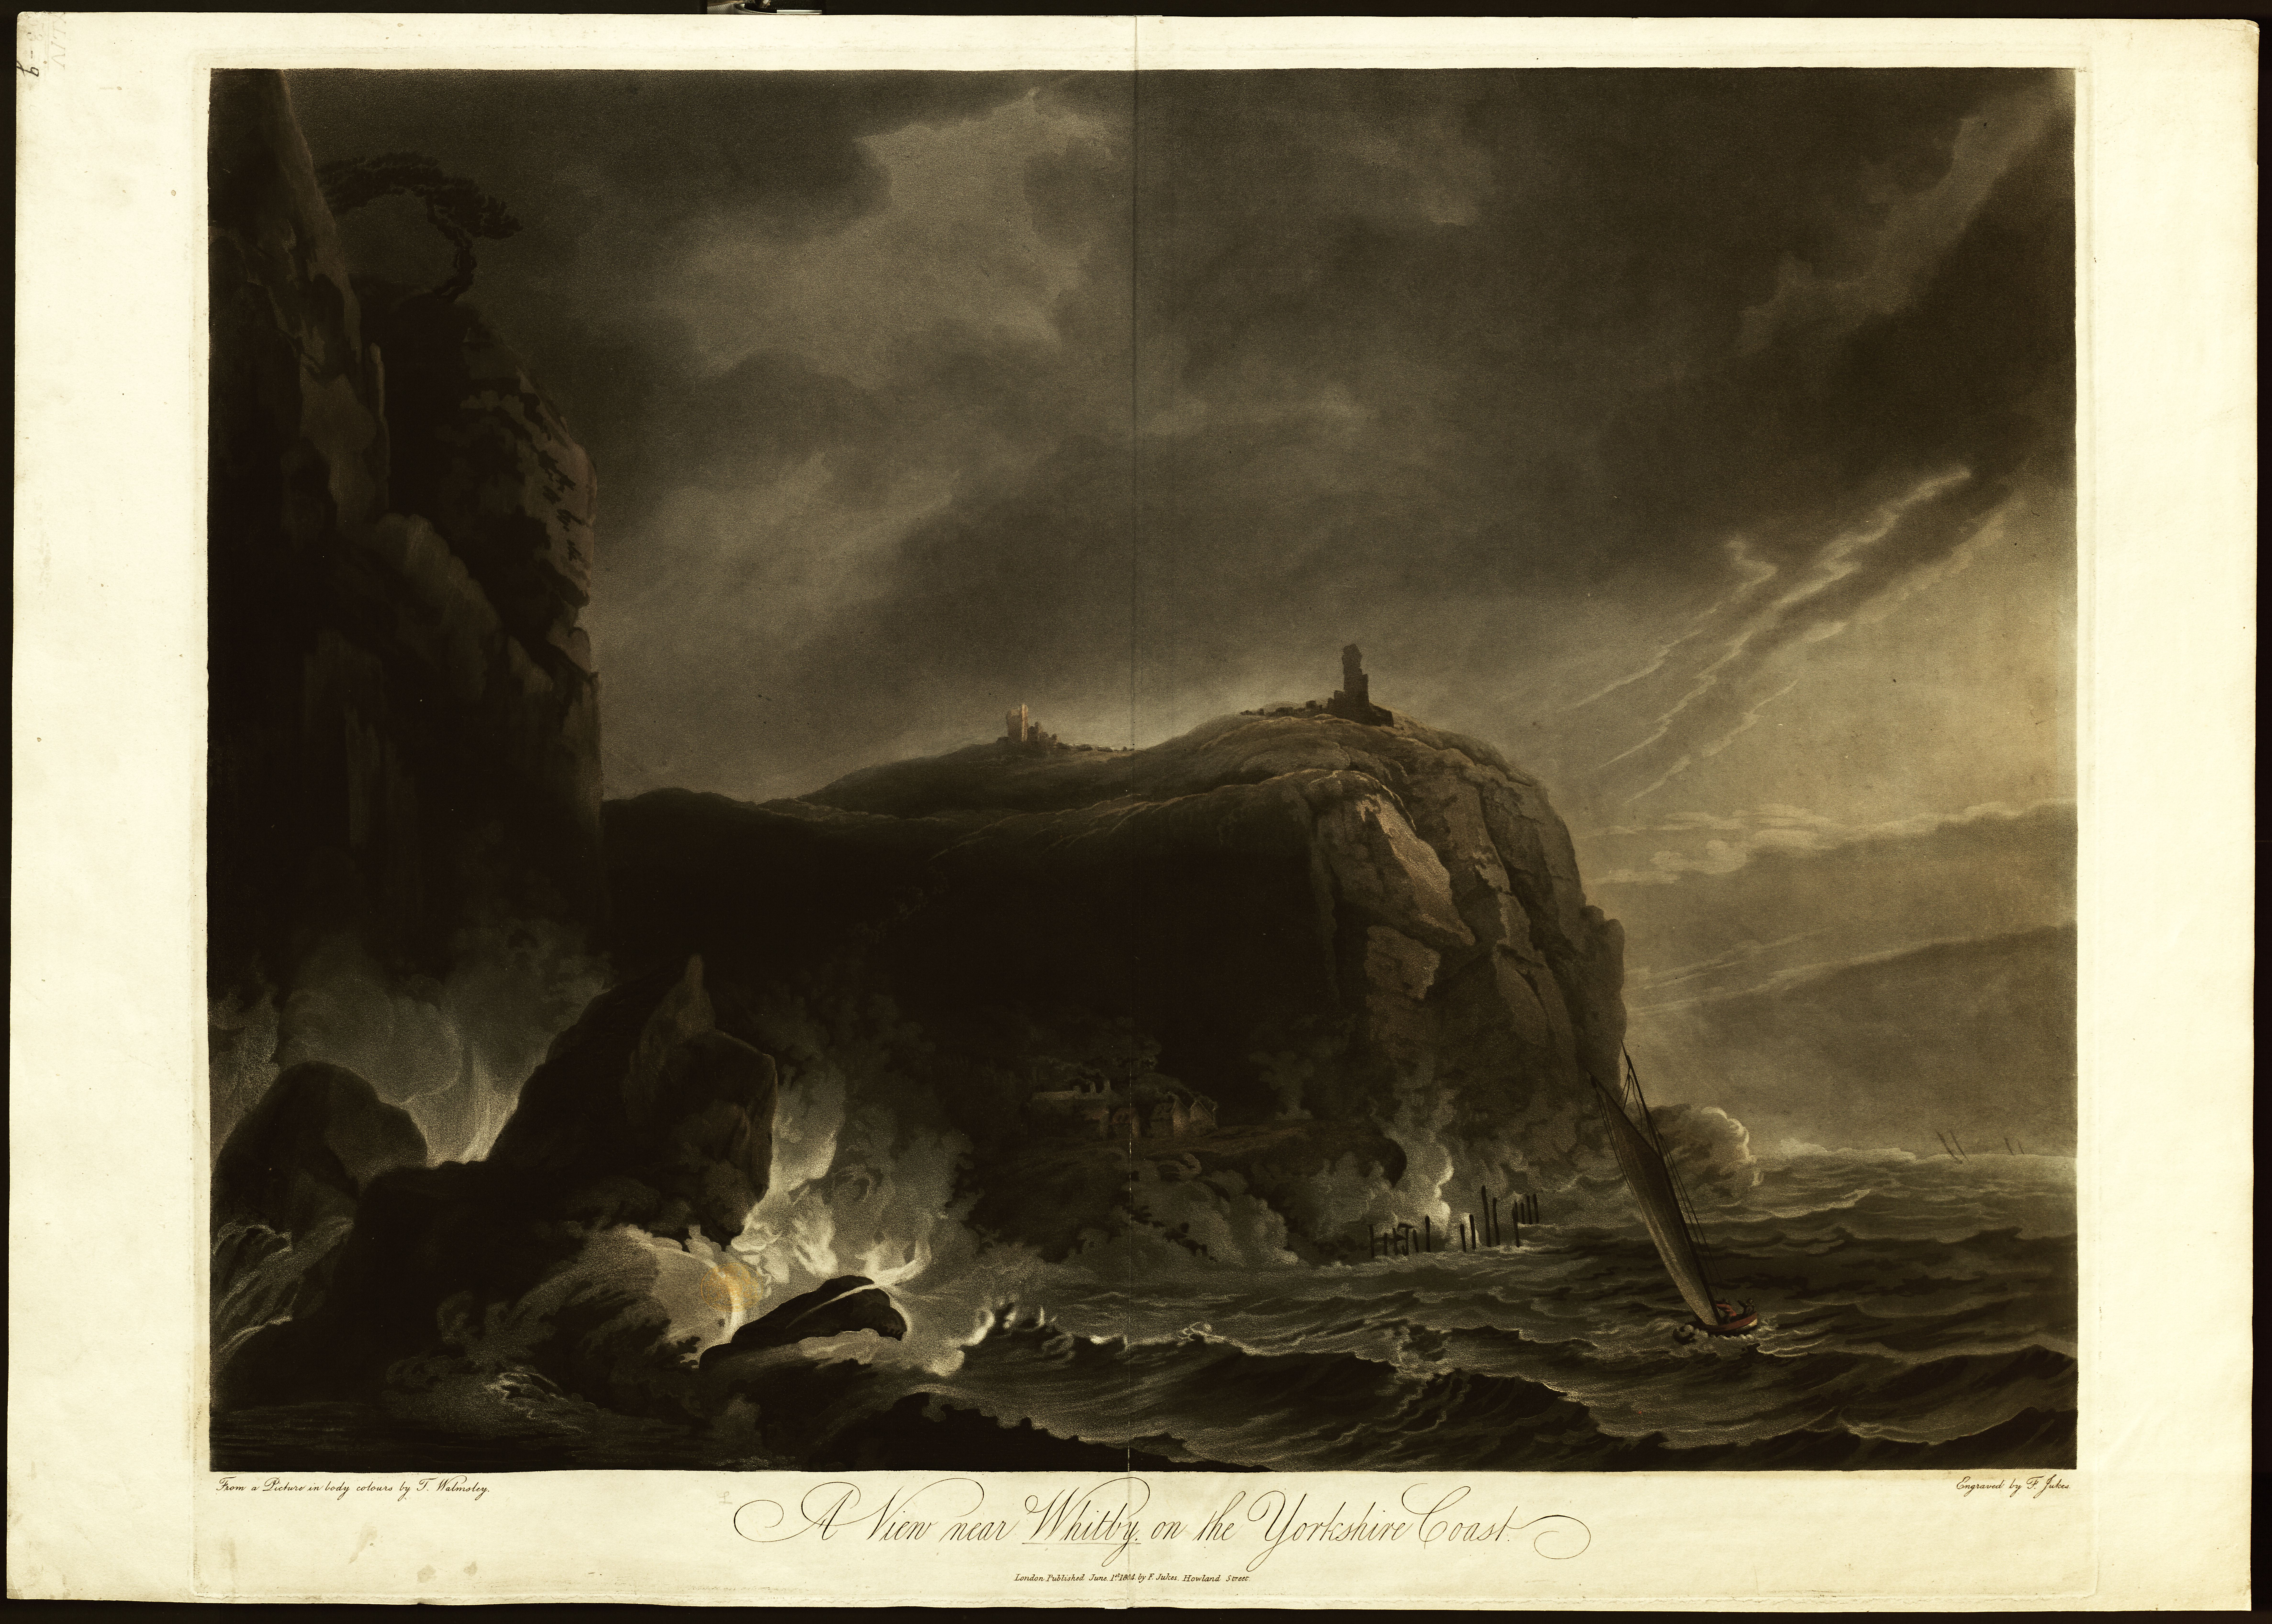 FileView of the coast by Whitby Francis Jukes 1804 Maps K Top